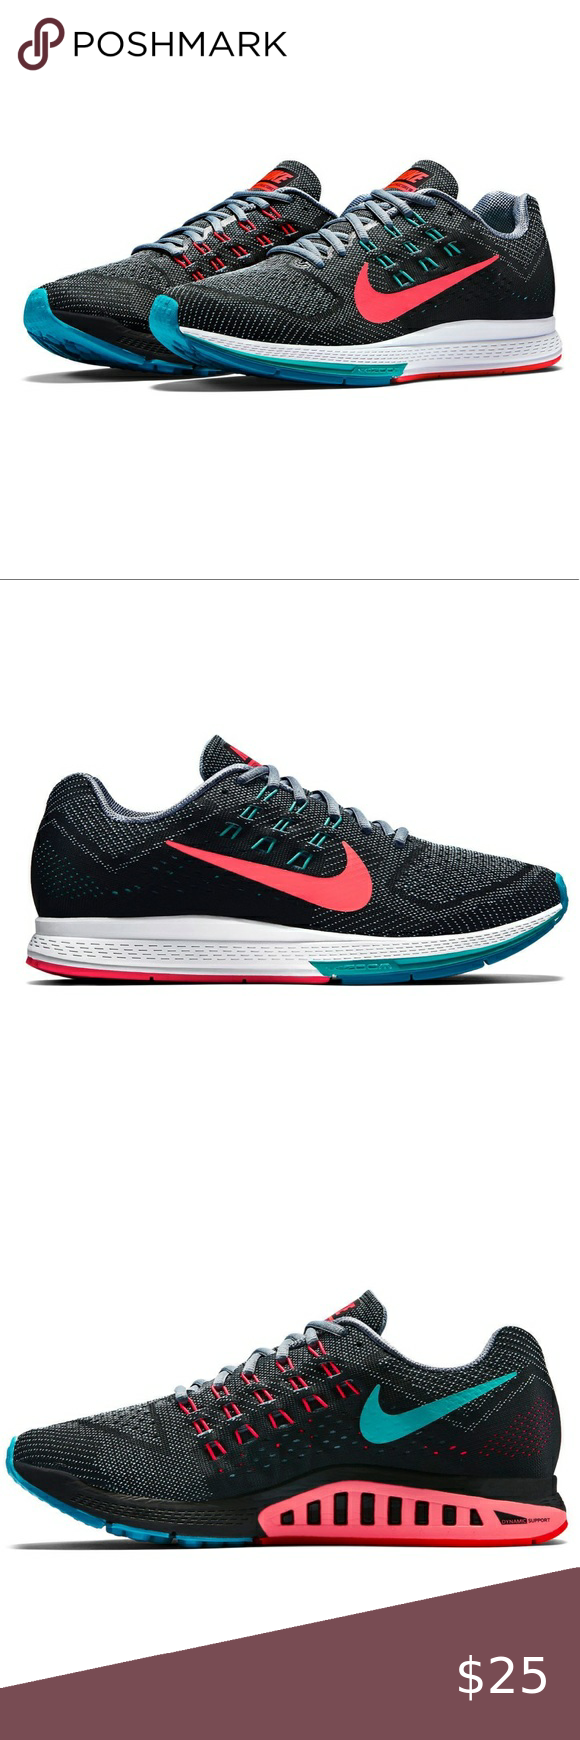 Necesitar Se asemeja huevo  Nike Air Zoom Structure 18 Sneakers | Nike air zoom, Sneakers, Nike